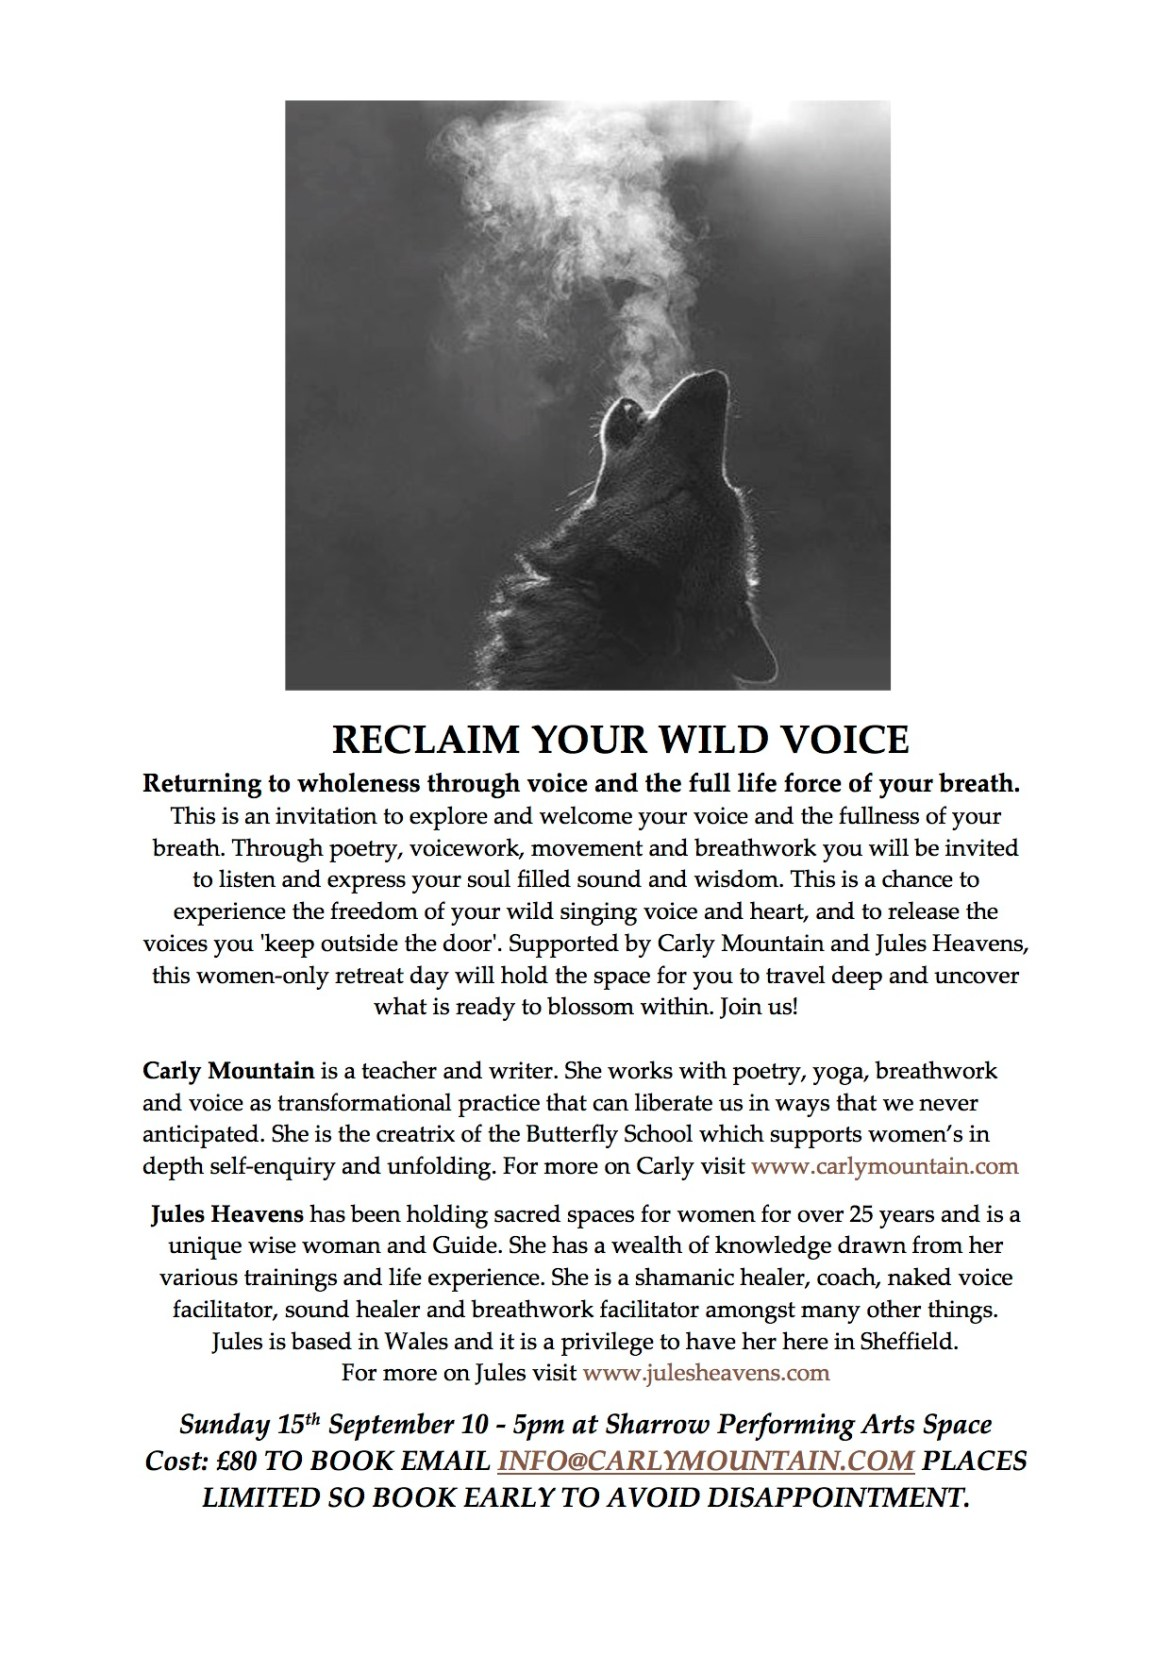 RECLAIM YOUR WILD VOICE WOMEN'S DAY RETREAT 15TH SEPTEMBER 2019